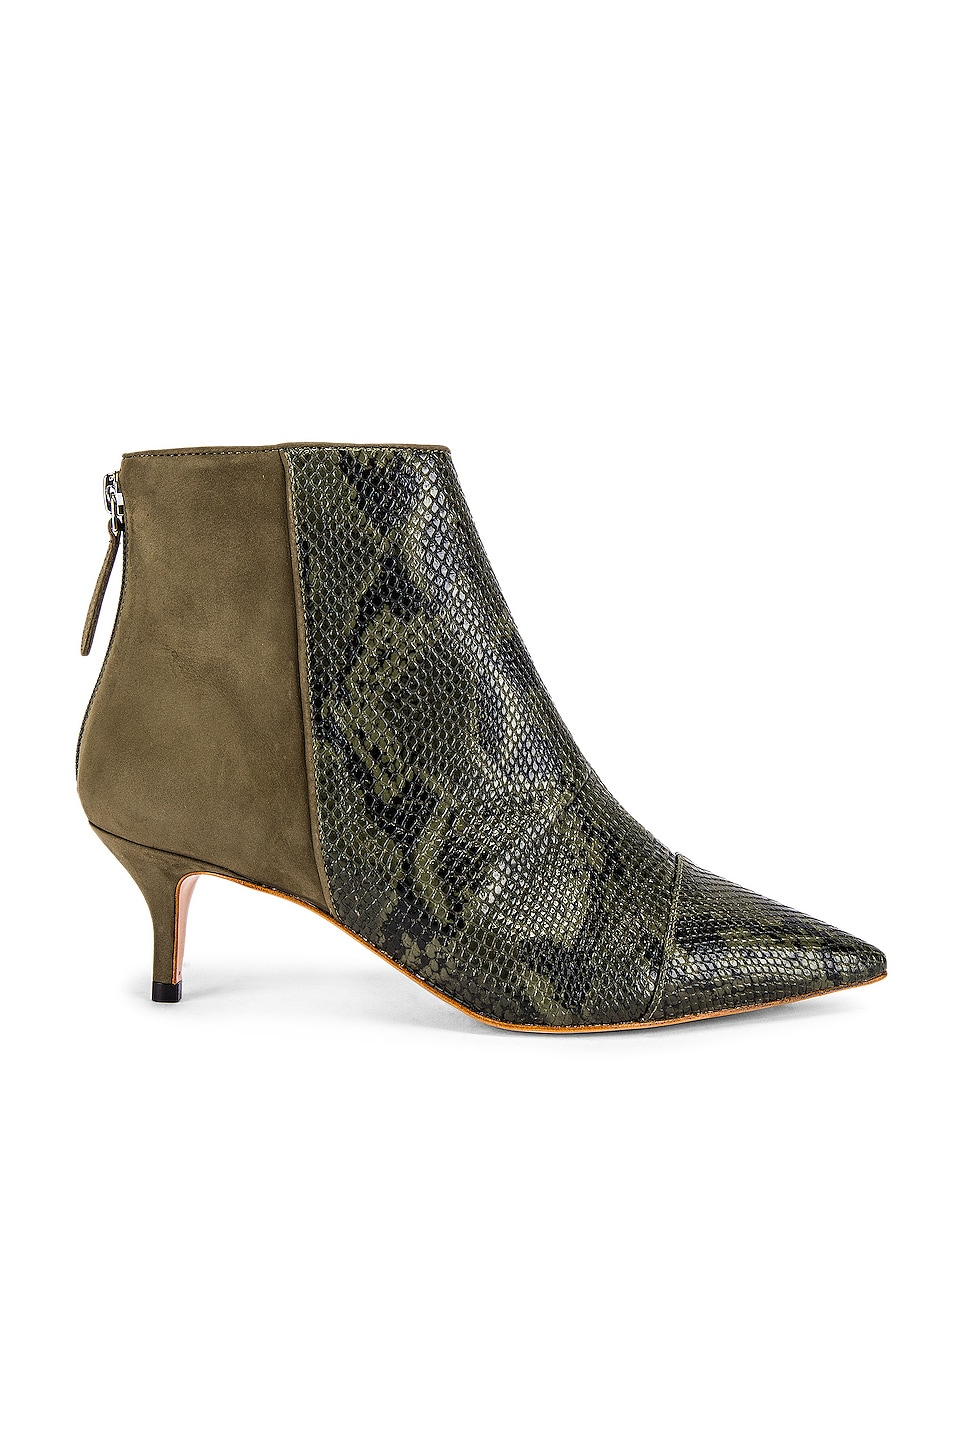 RAYE Rio Bootie in Green Snake